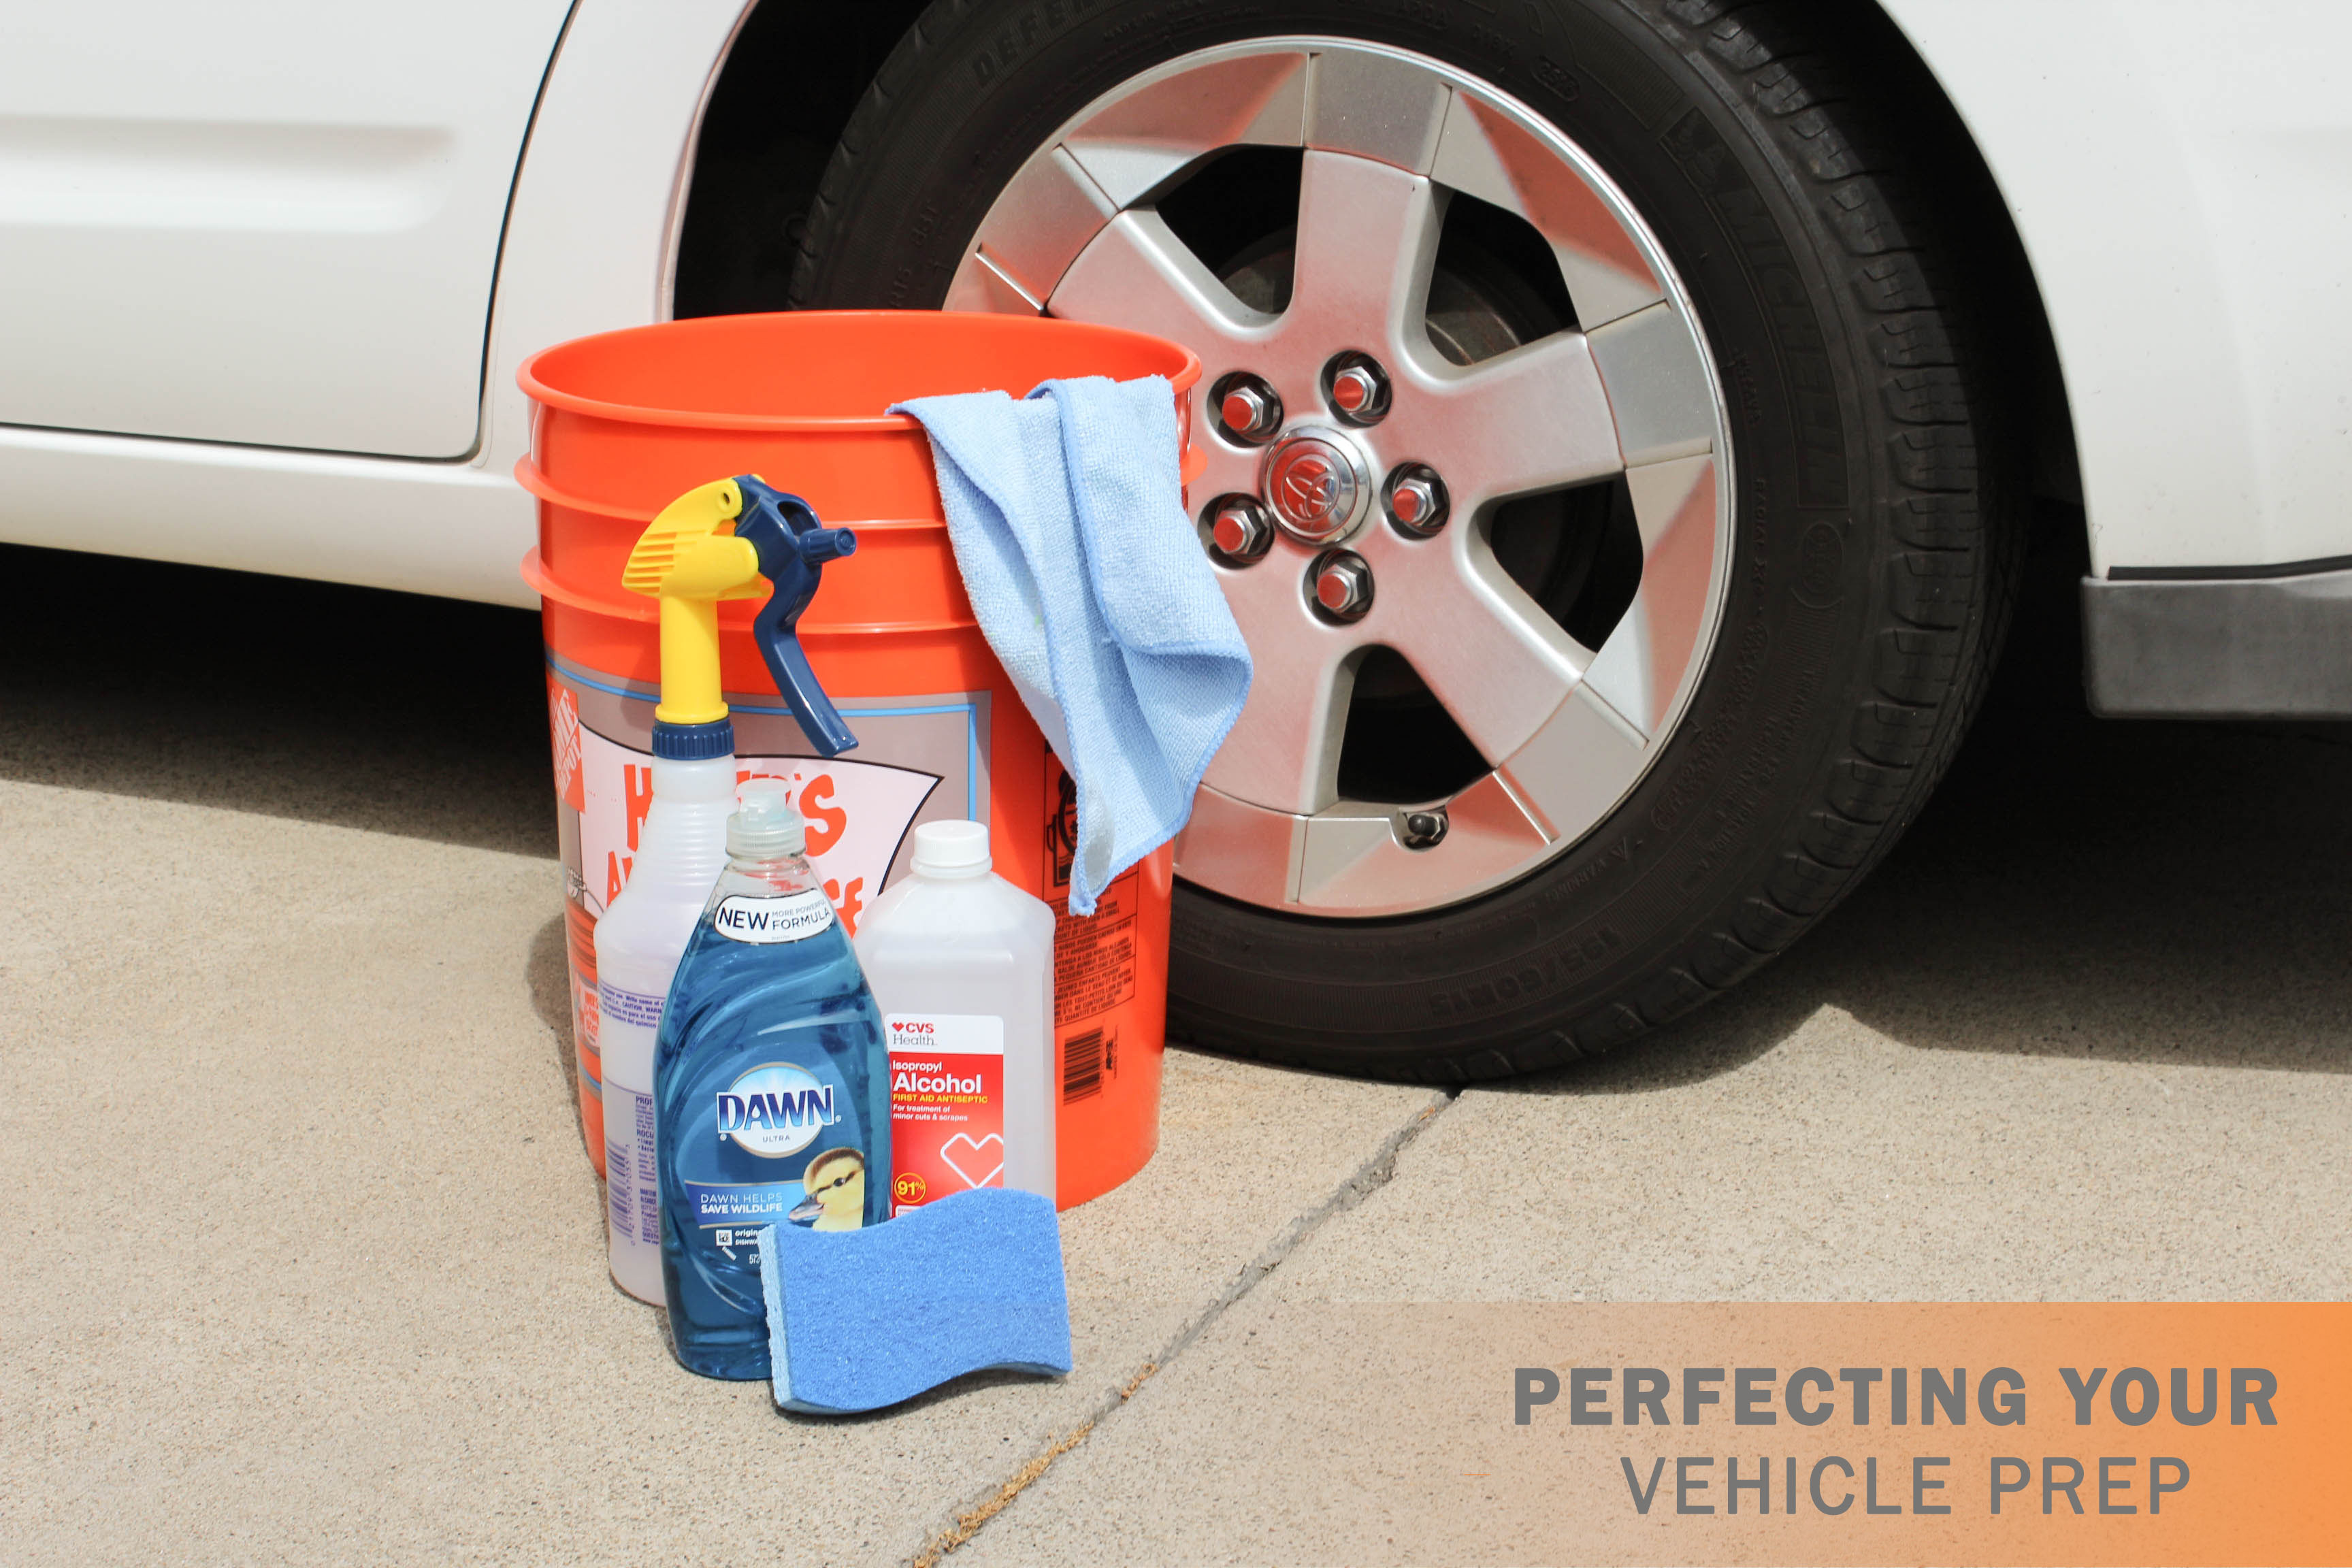 Perfecting Your Vehicle Prep - Arlon HUB™ - Arlon HUB™